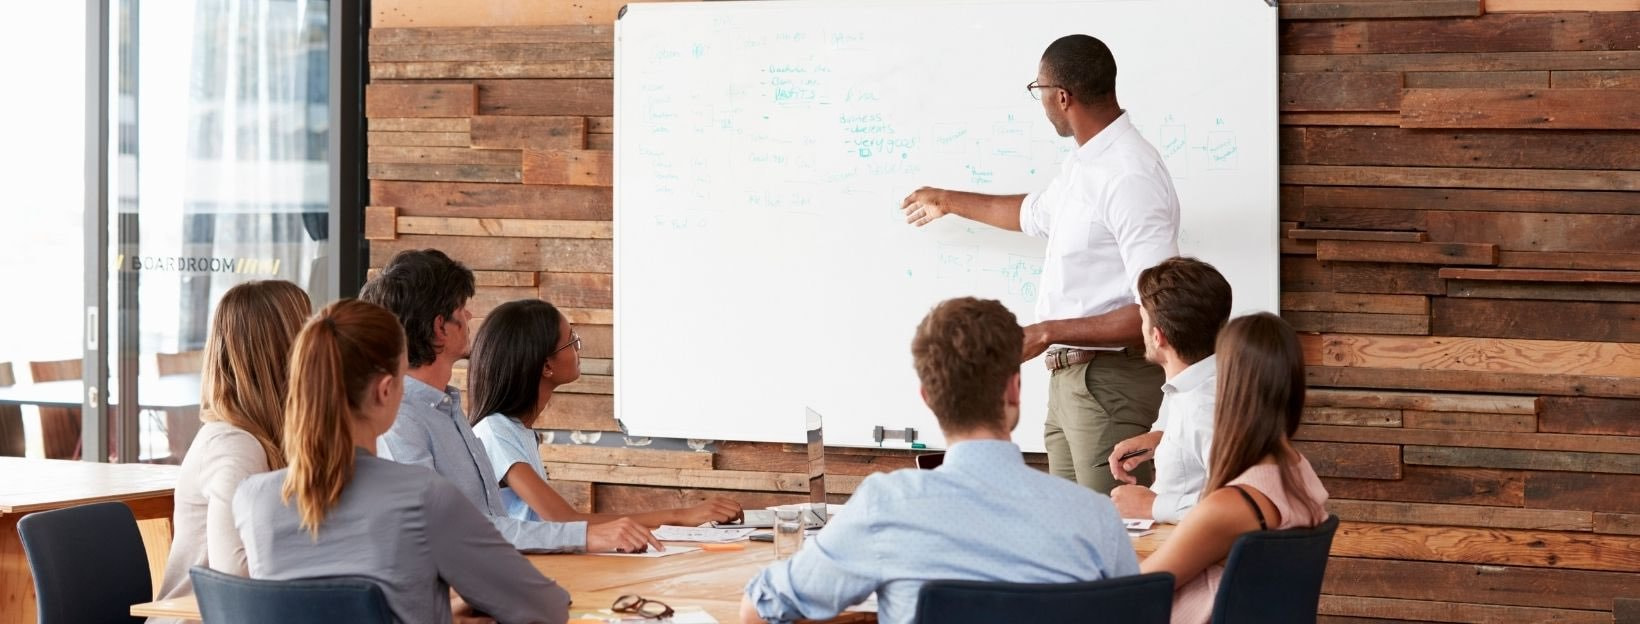 BANNER-Canva-MACXVYoITDY-young-black-man-at-whiteboard-giving-a-business-presentation